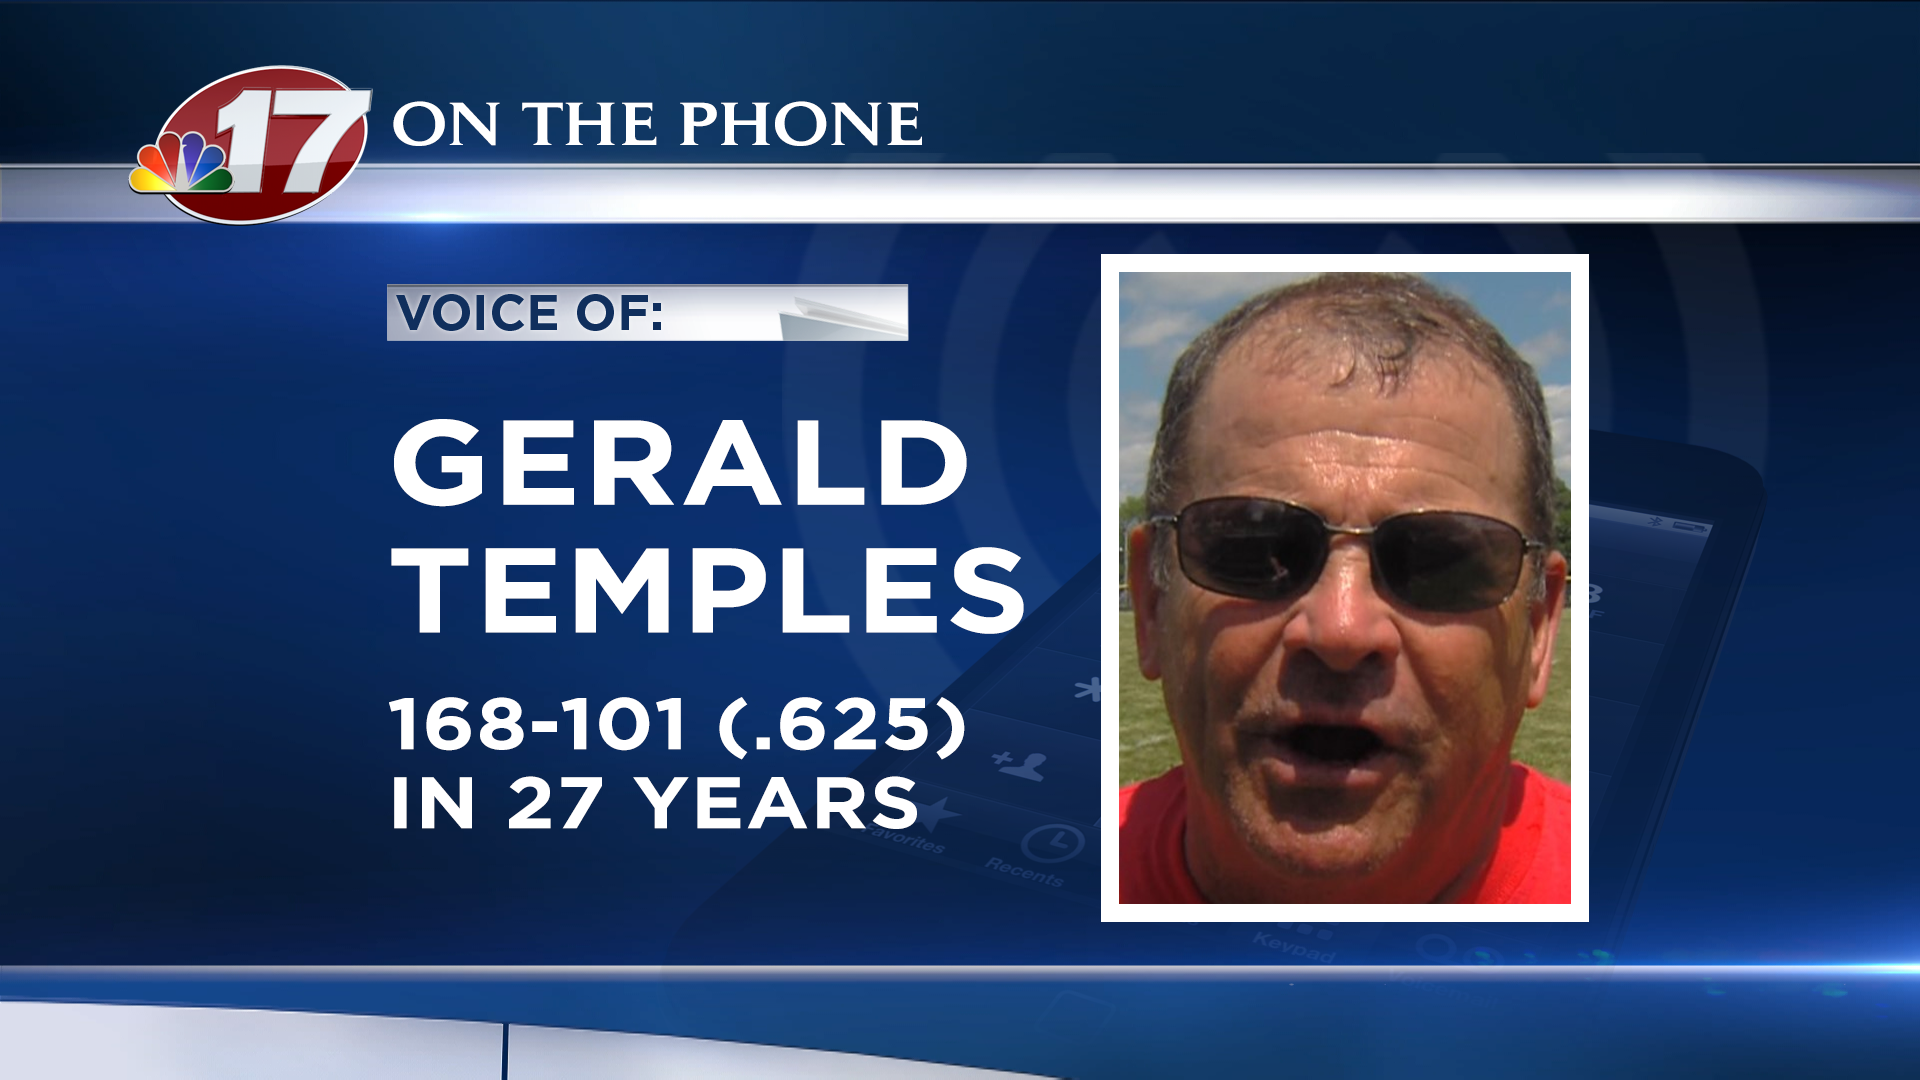 Longtime head coach Gerald Temples' legacy lives on through his son Wes Temples (head coach of Normal Community) and his son-in-law Brett Hefner (Effingham).